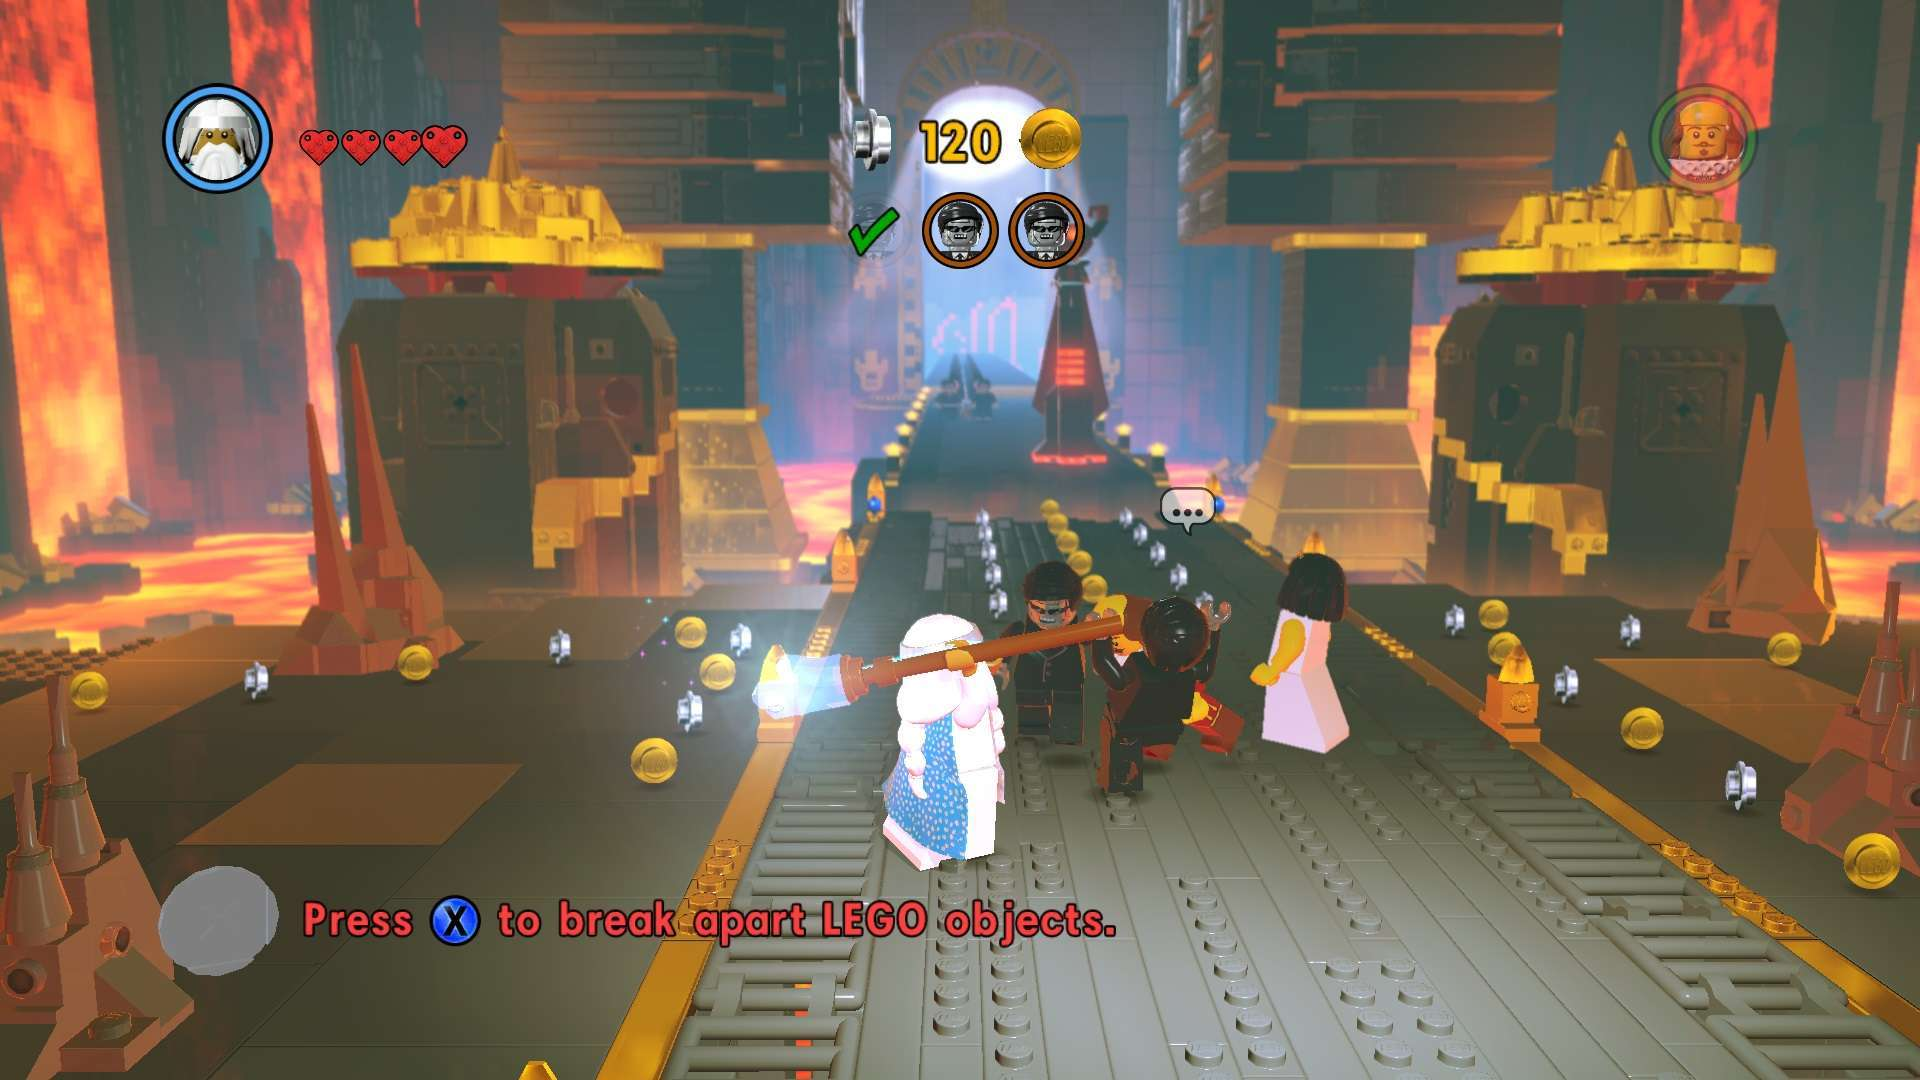 The-LEGO-Movie-Videogame-Screenshot-02.jpg